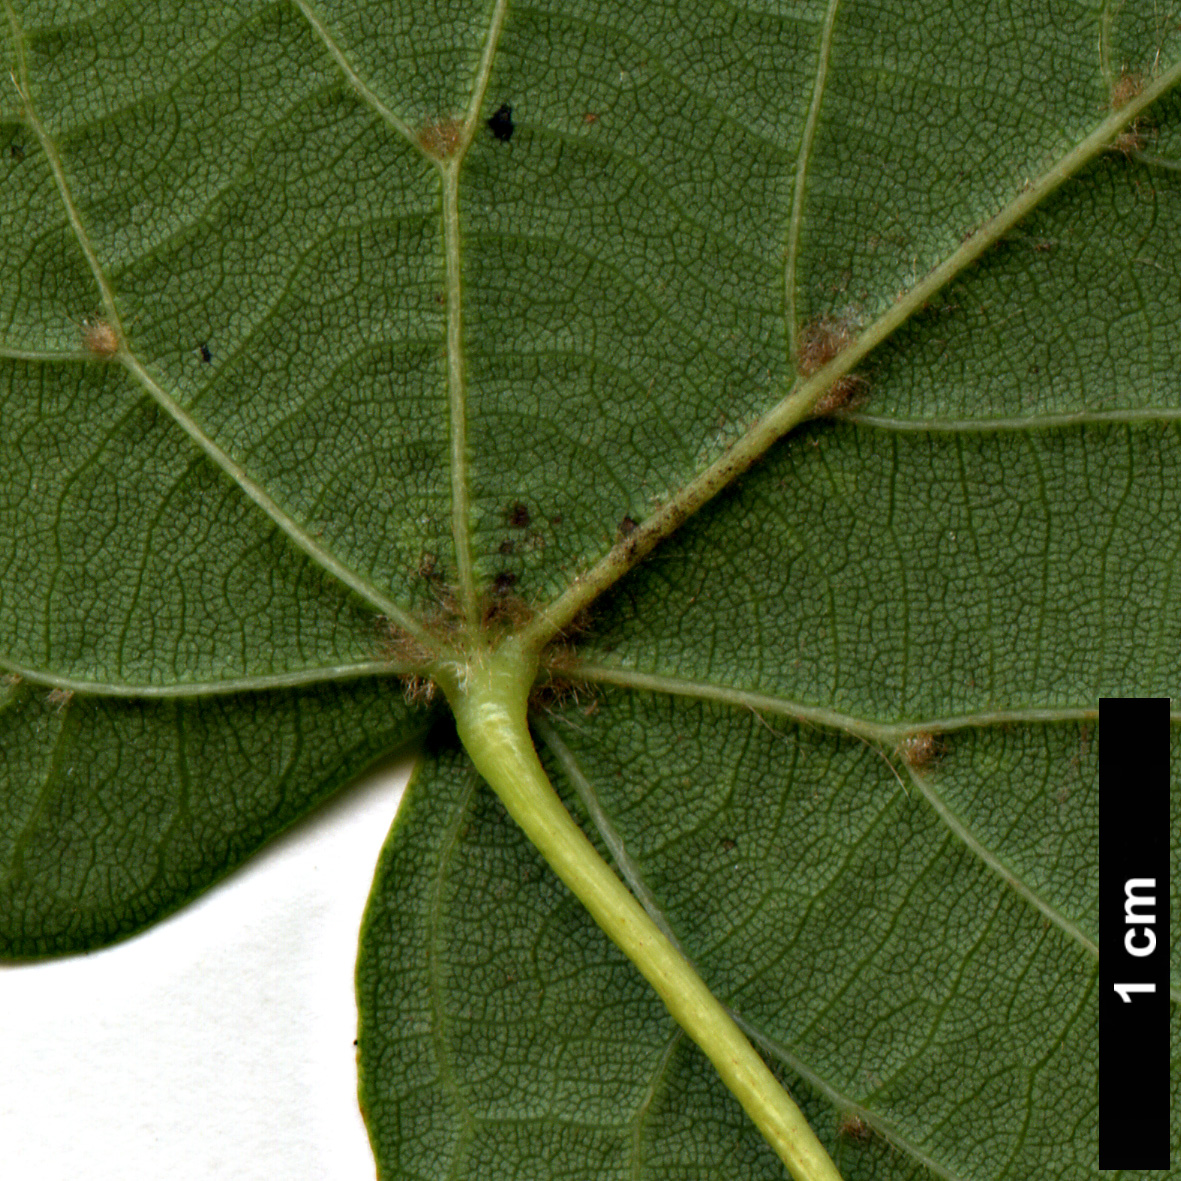 High resolution image: Family: Malvaceae - Genus: Tilia - Taxon: amurensis